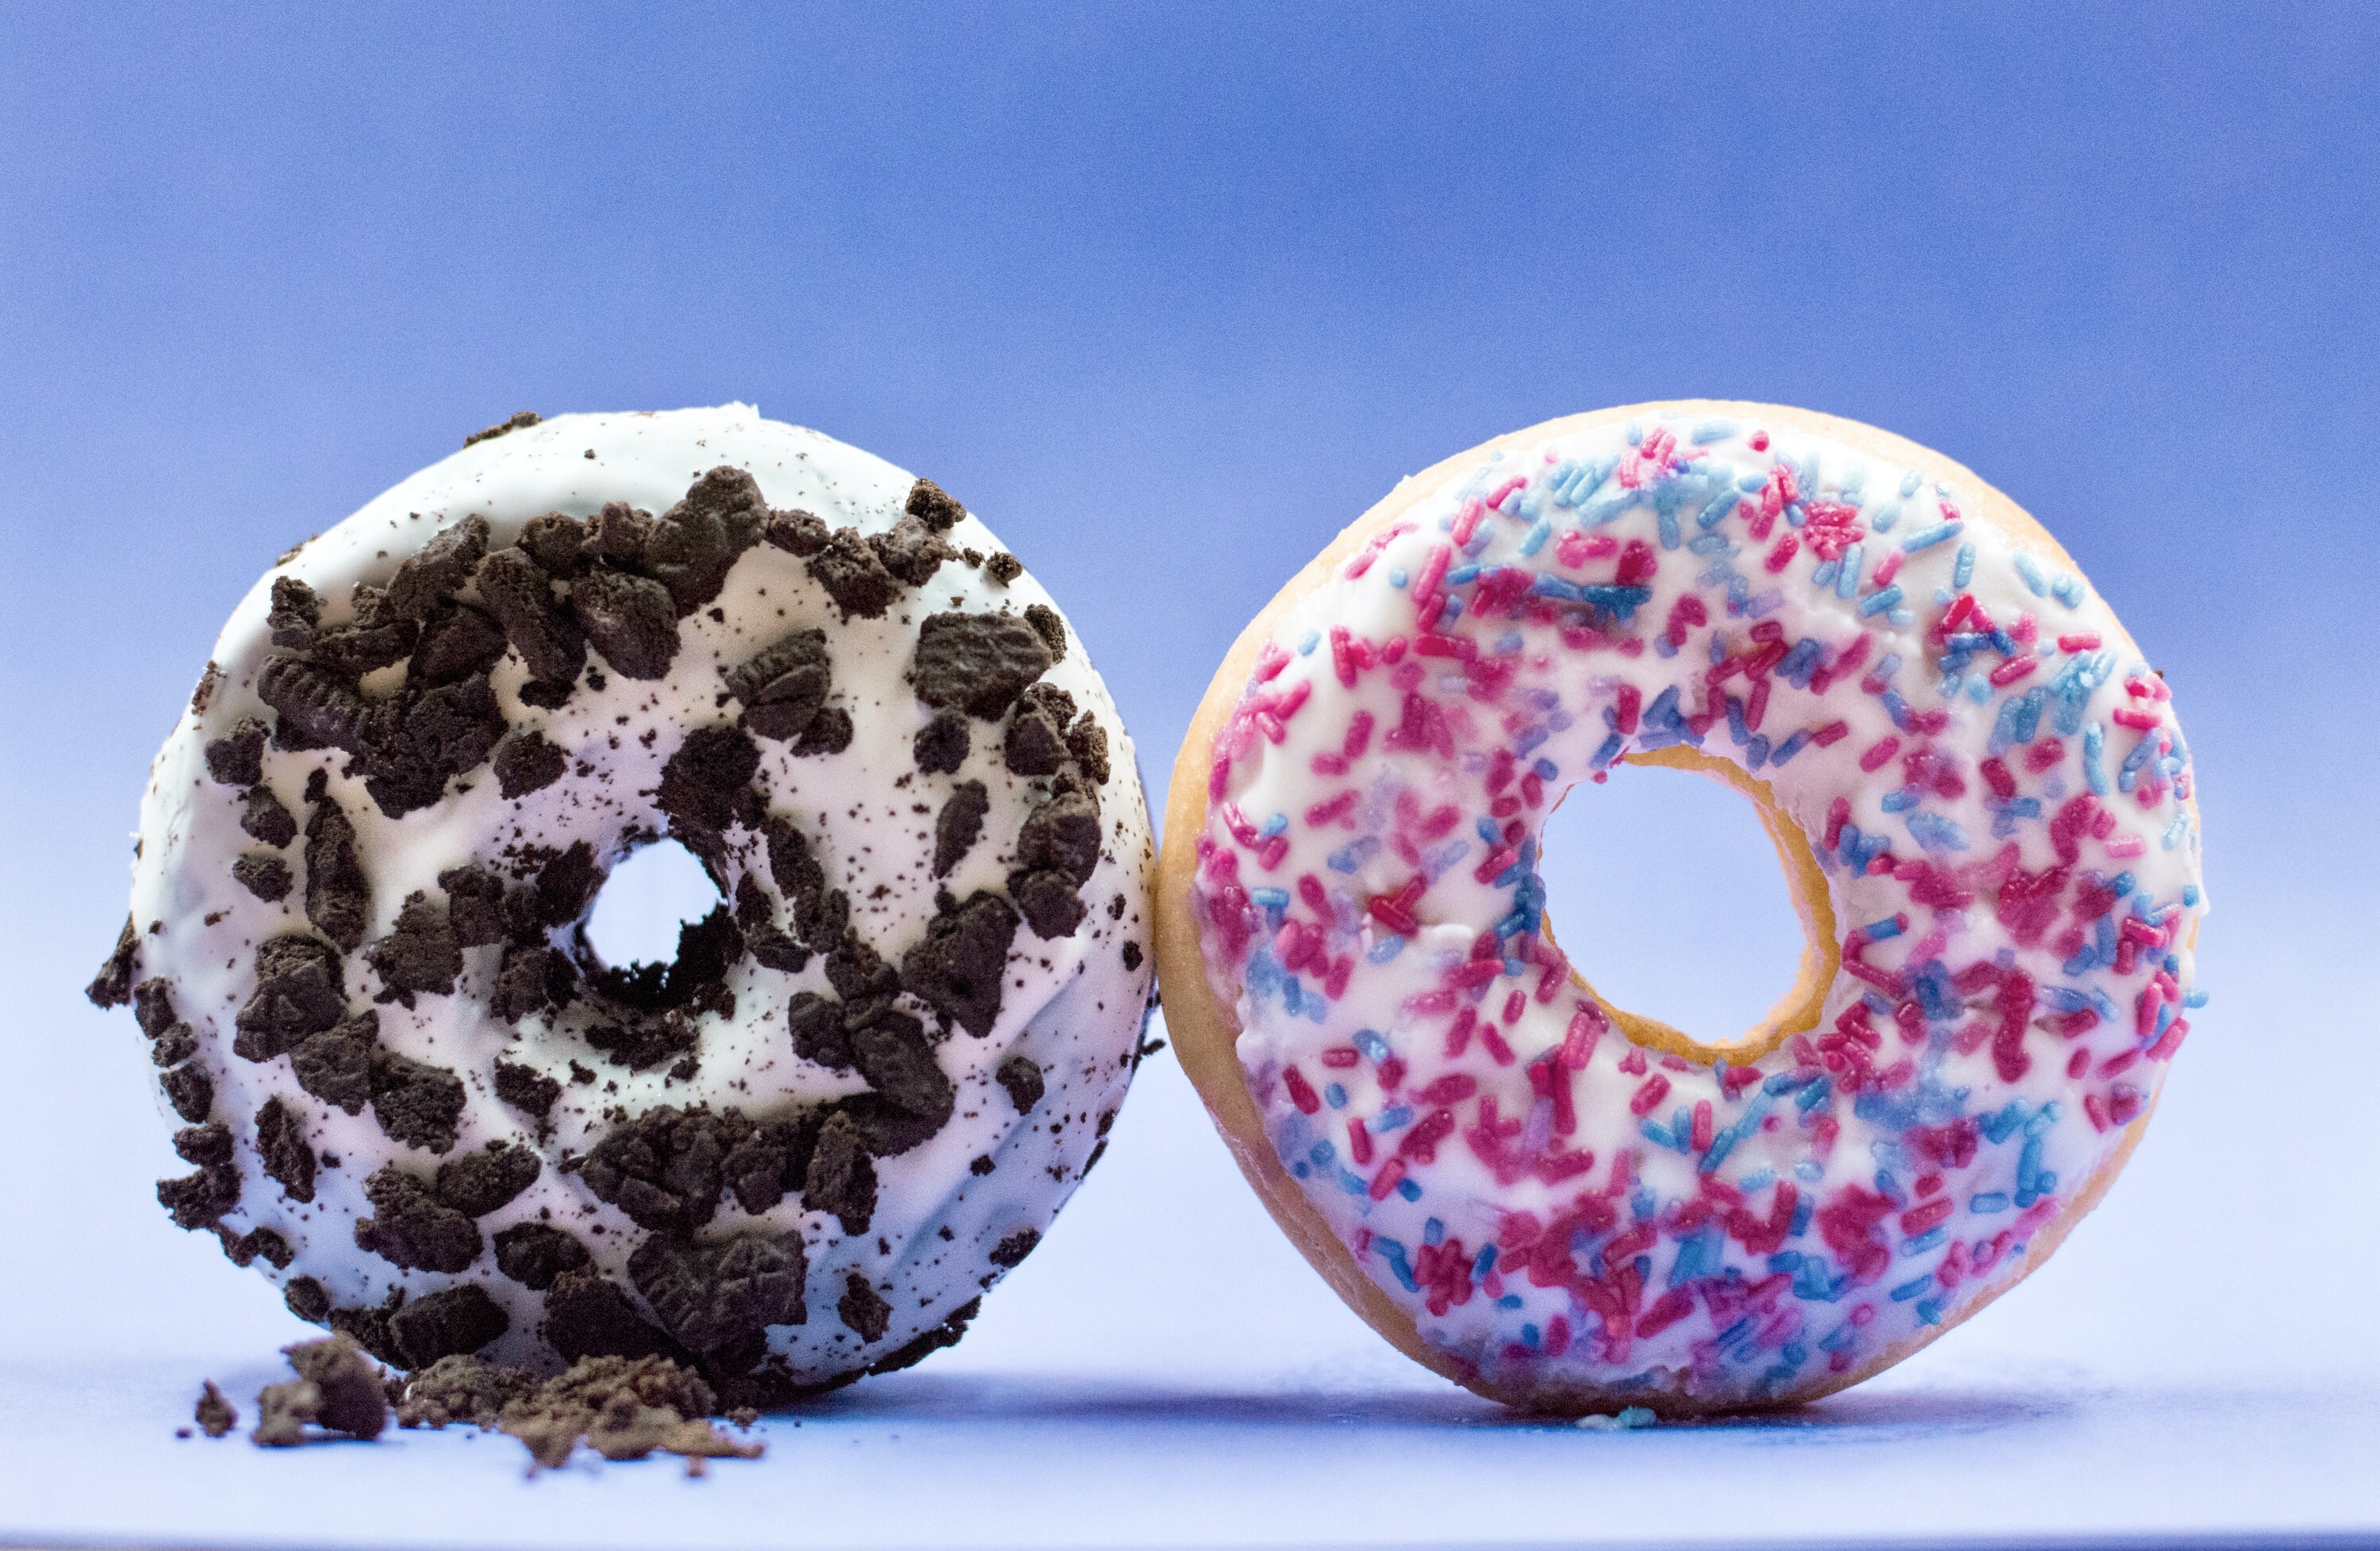 shallow focus photo of two donuts